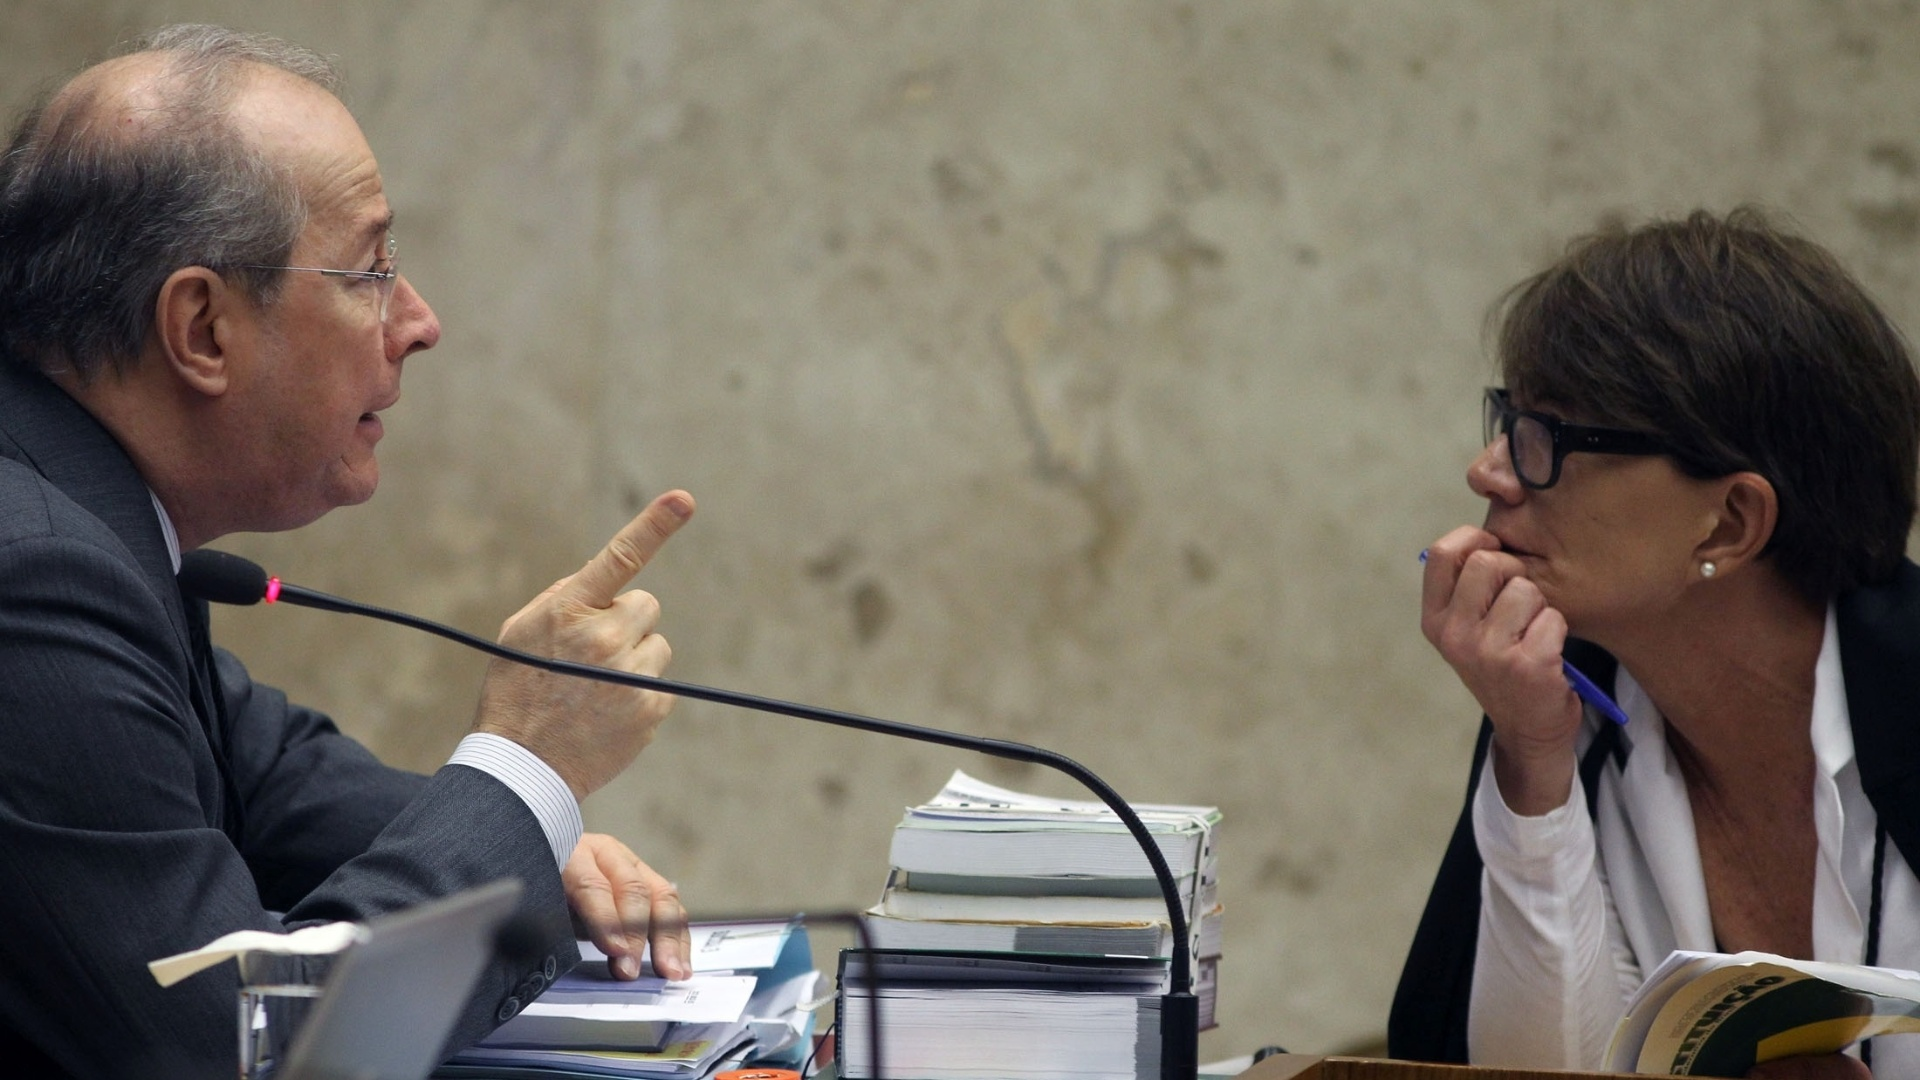 28.nov.2012 - O ministro do STF (Supremo Tribunal Federal) Celso de Mello conversa durante a sessão de julgamento do mensalão que deverá fixar as penas do deputado federal João Paulo Cunha (PT-SP),  do ex-deputado federal Roberto Jefferson (PTB-RJ) e do ex-tesoureiro informal do PTB Emerson Palmieri